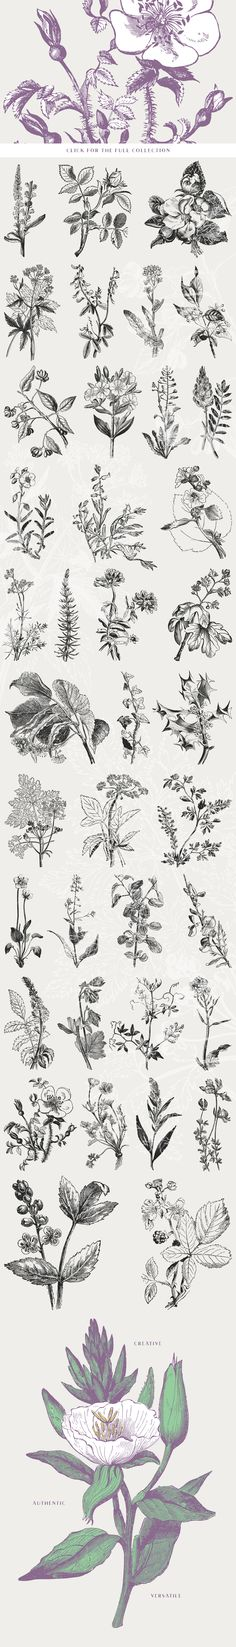 39 Plant & Flower Illustration Vol.3 by Vector Hut on @creativemarket